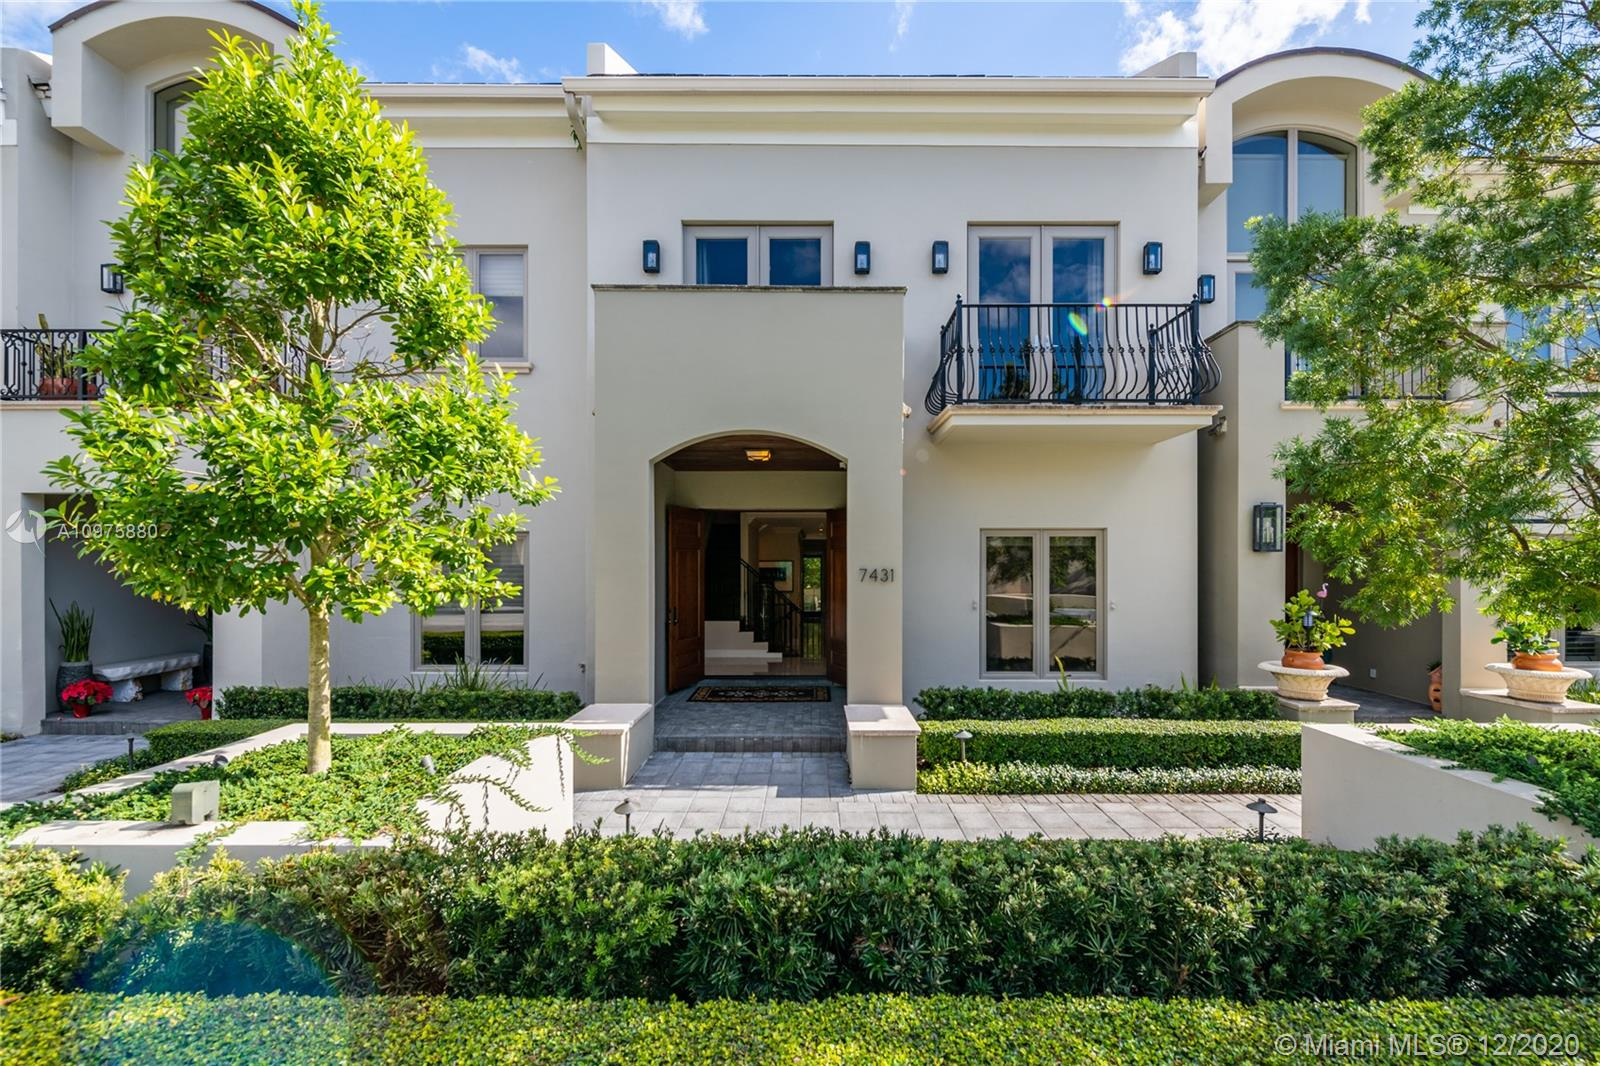 Townhomes at Oak Lane. Elegant yet low-key luxury defines life in this gated, camera-monitored South Miami community. The 3-story residence accented w/French doors + marble & wood floors brims over w/indulgent amenities. Pamper yourself in a spa-like master bath w/soaking tub. Prepare fabulous meals in a top-of-the-line gourmet kitchen. Host special evenings in formal living & dining rooms. Hang out w/family & friends in the kitchen-adjacent family room that opens to a large private patio w/a built-in alfresco kitchen. Set up an office, gym, playroom, she-shed, or man-cave in a large basement-level room w/direct access via stairs, elevator & garage. Hurricane defense features incl. impact windows/doors, Kevlar screens, generator. 3BD/3.5BA/2,678 Adj. SF. 4 Garage spaces. Extensive storage.